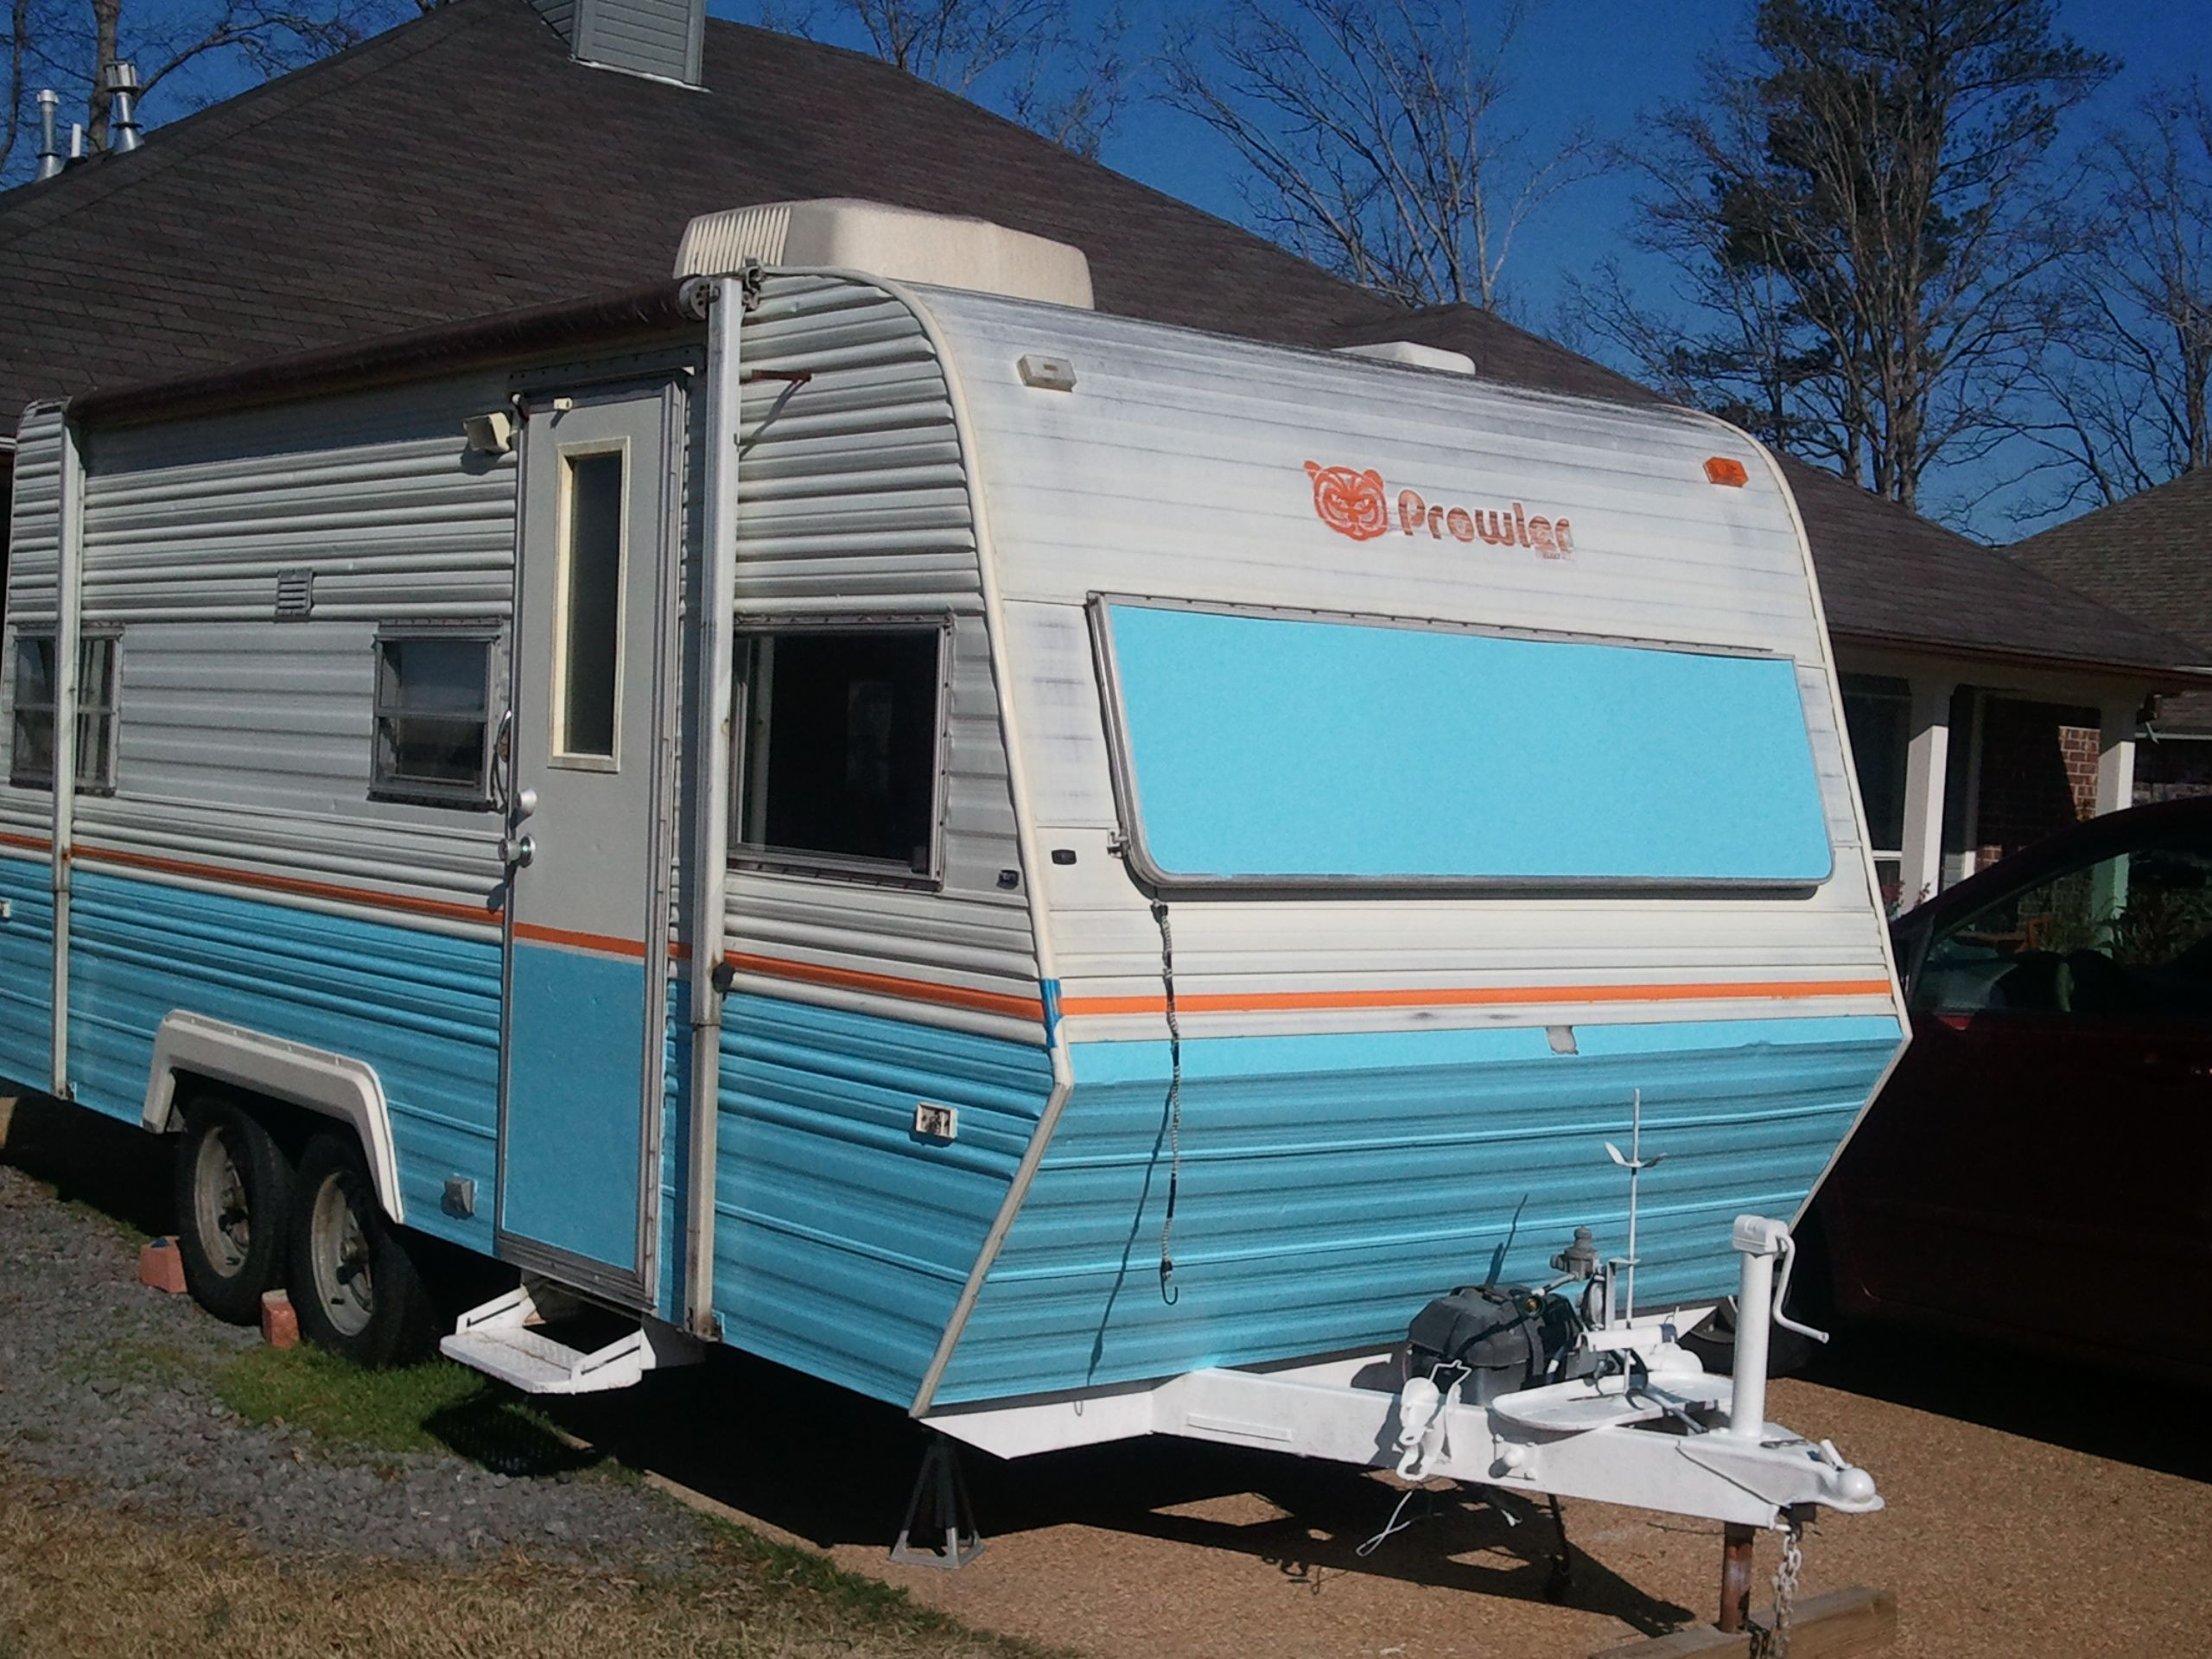 Old travel trailers paint colors prowler pull behind - Preview exterior house paint colors ...